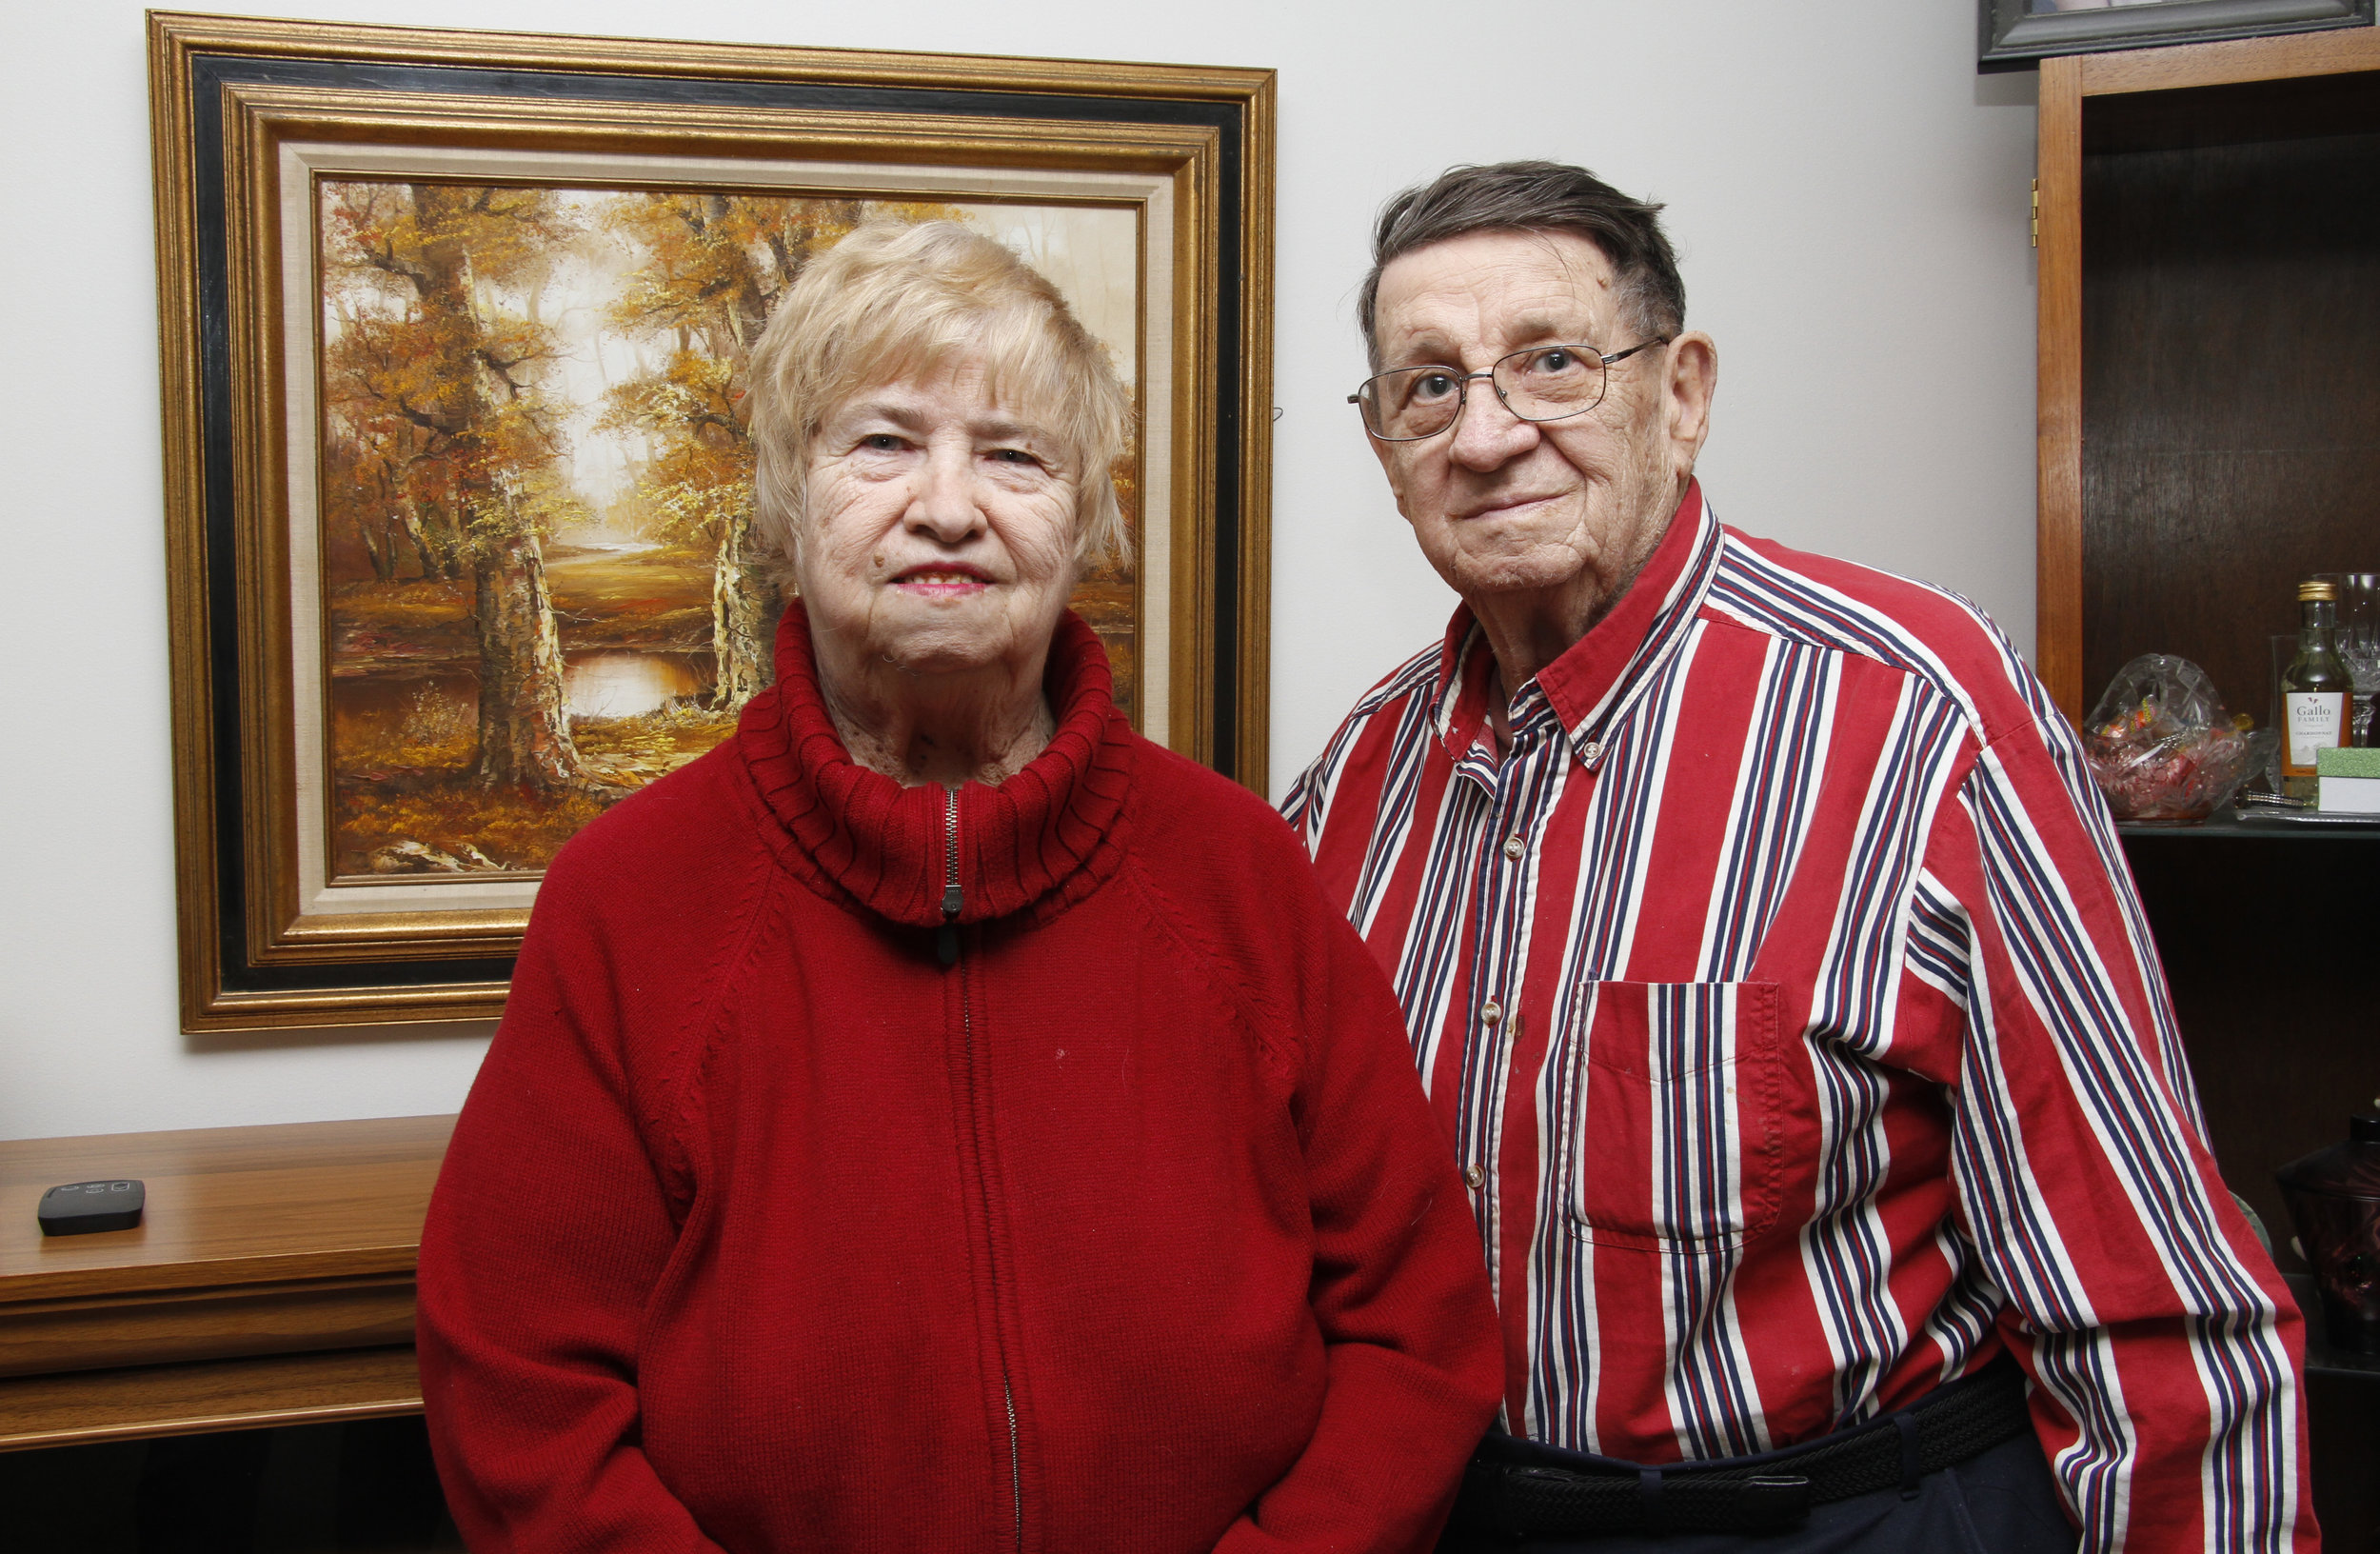 Nancy and Norbert Glowacki, of Calumet City, Illinois, are pictured in their home. The two met on Jan. 31, 1962 while polka dancing at Eddie's Crystal Tap in Burnham. On Feb. 14 that same year, Norbert asked Nancy to marry him. The two celebrate Jan 31. and Feb. 14 every year by going out to dinner at the Cavalier Inn in Hammond, Indiana or the Warsaw Inn in Lynwood, Illinois.